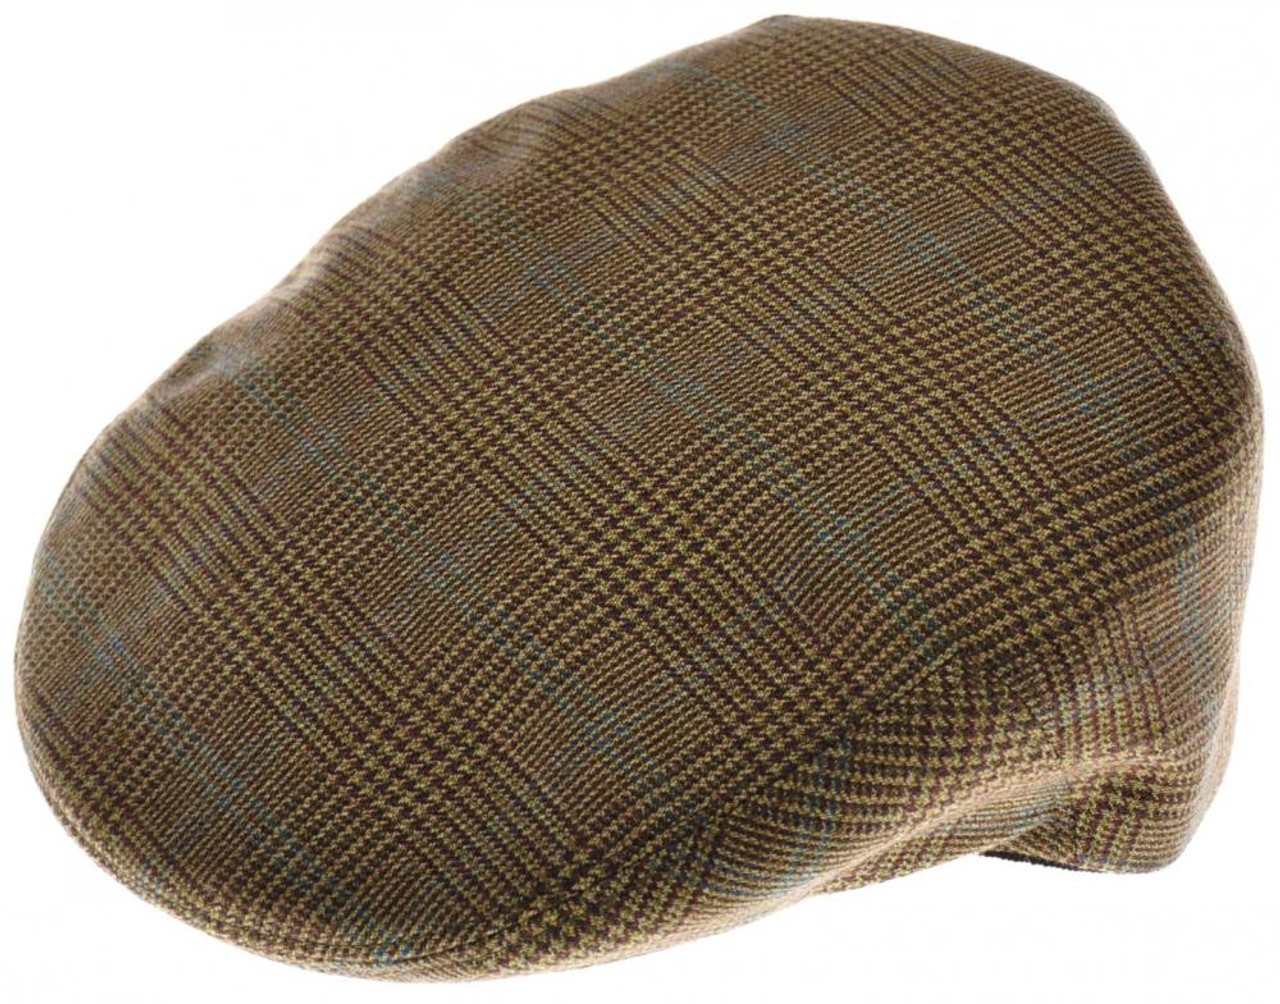 Luciano Barbera Driving Cap Hat Cashmere Size 59 Brown Green Plaid 48CP0105 b2d1b5c9a